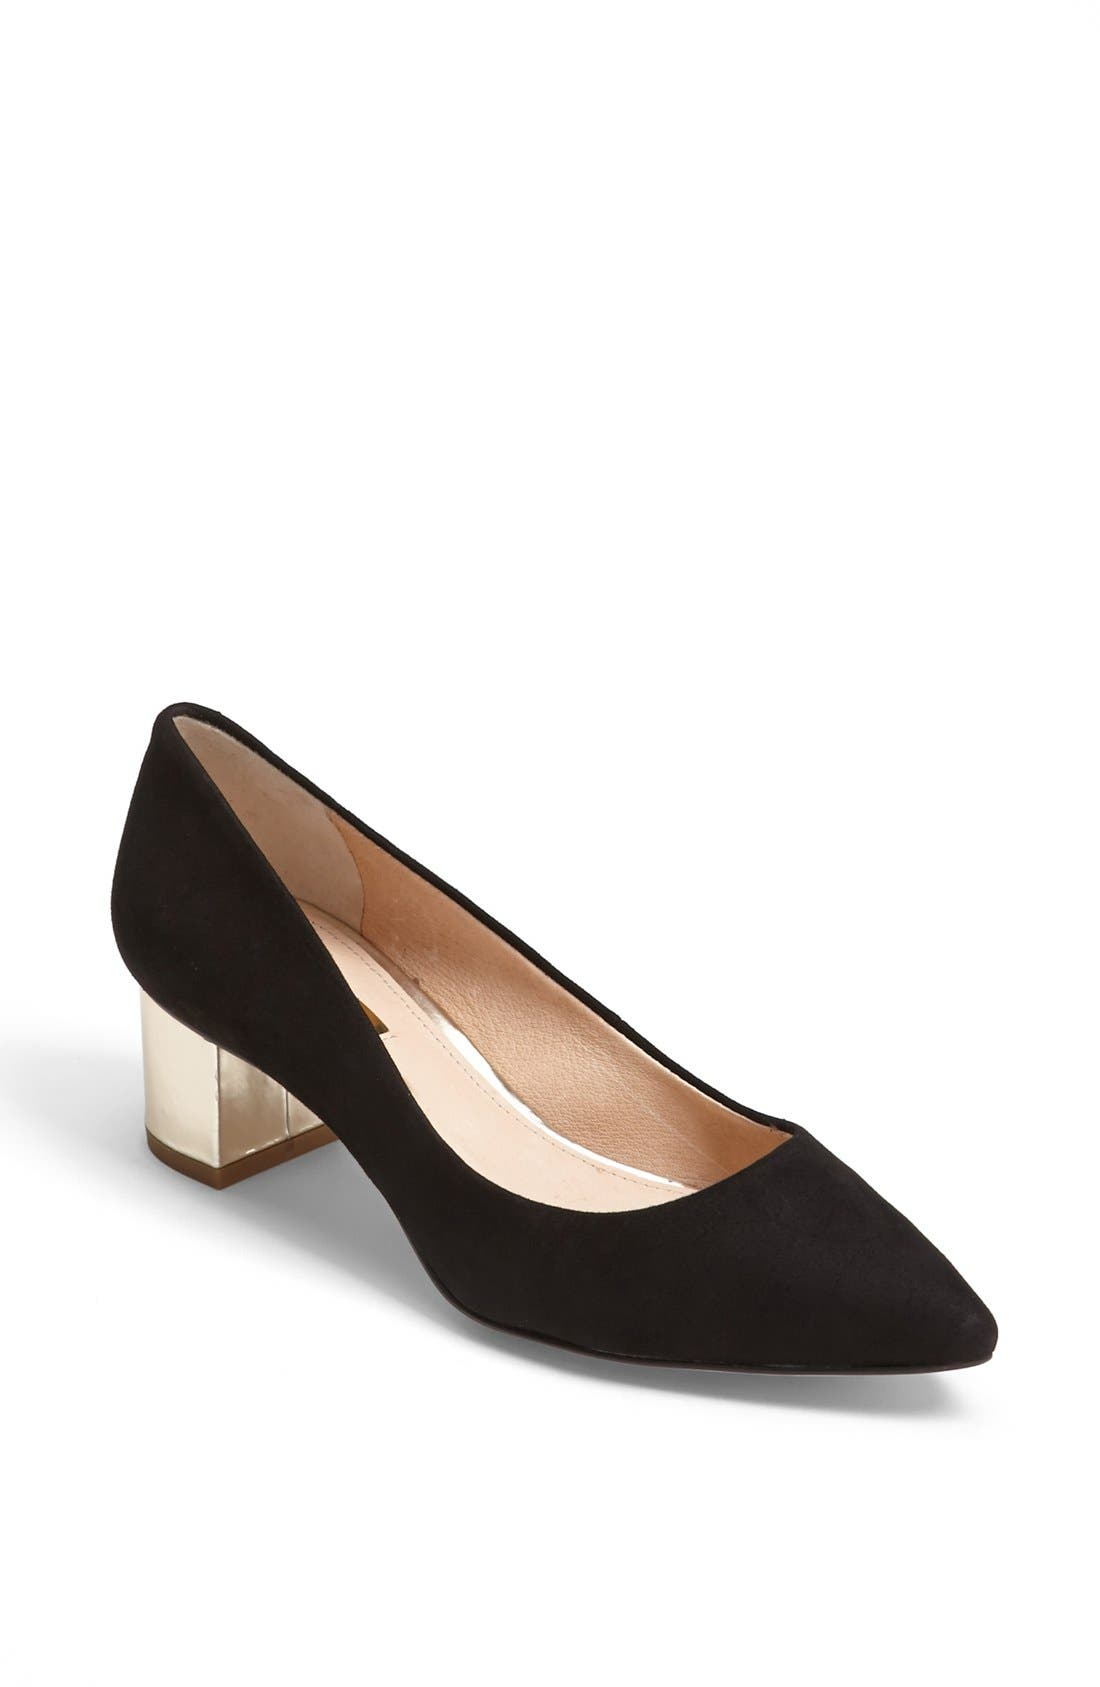 Main Image - Louise et Cie 'Jadyn' Pointed Toe Pump